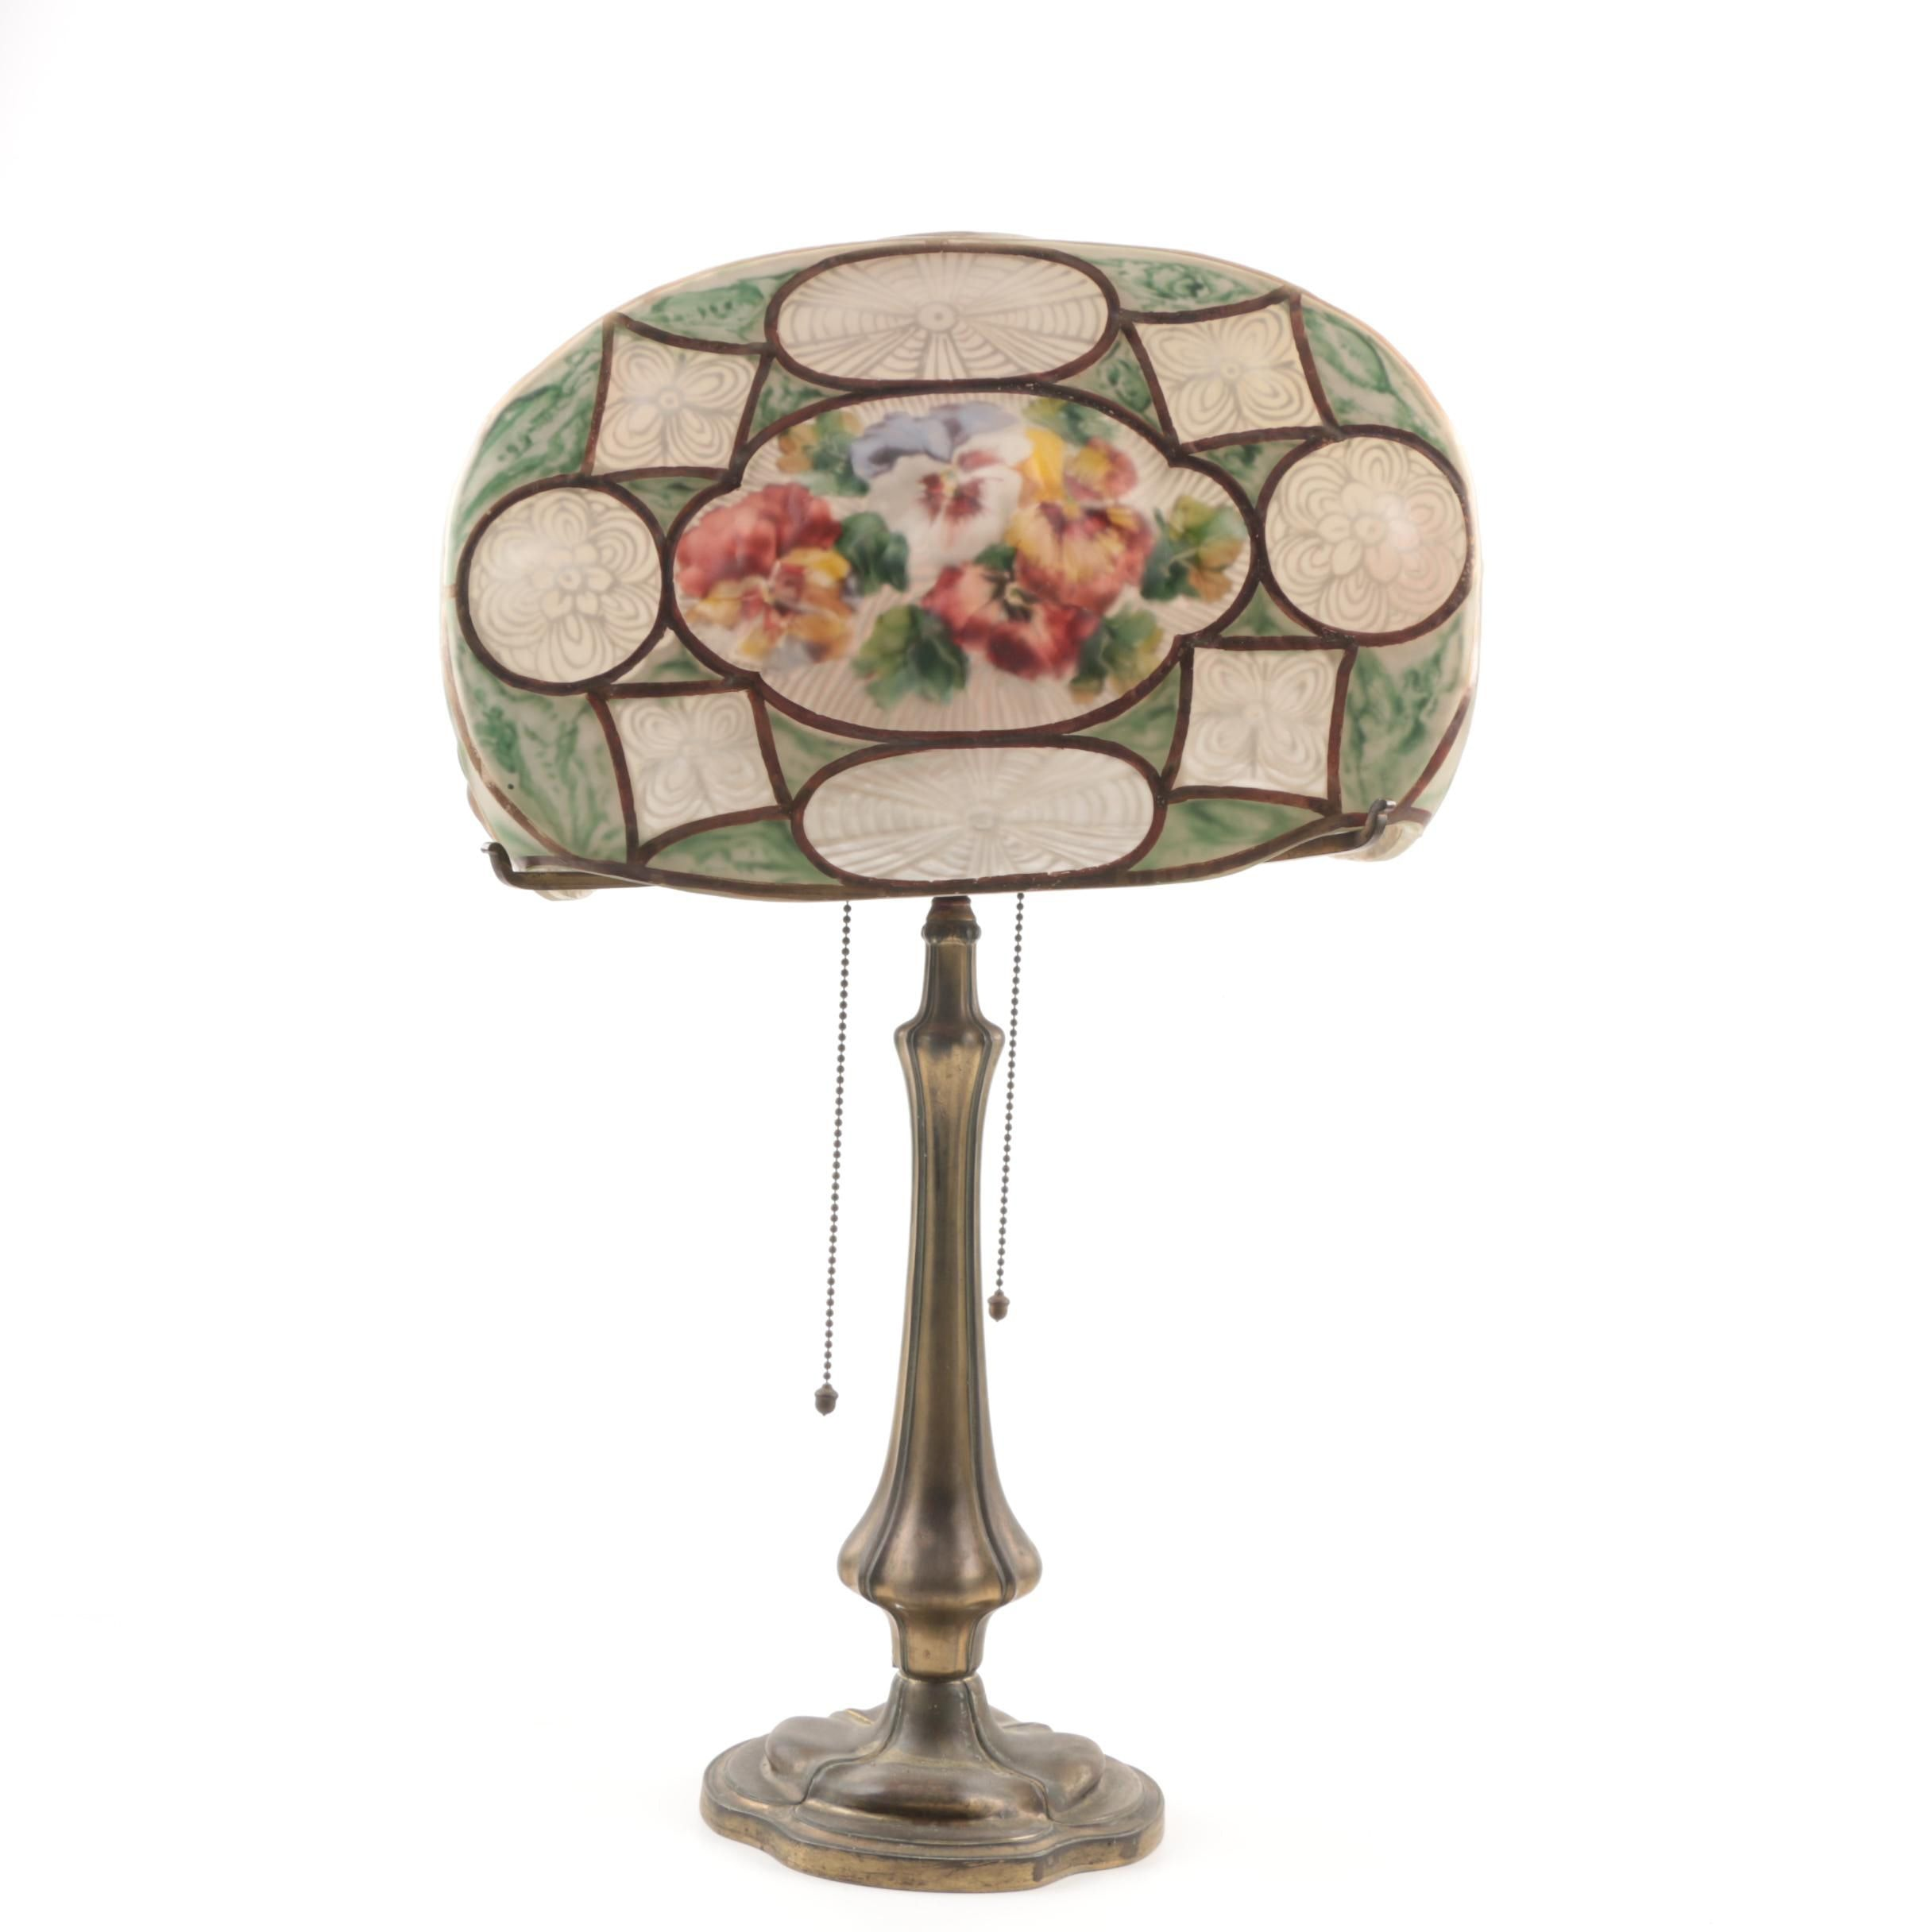 Pairpoint Puffy Table Lamp with Reverse-Painted  Painted Floral Shade